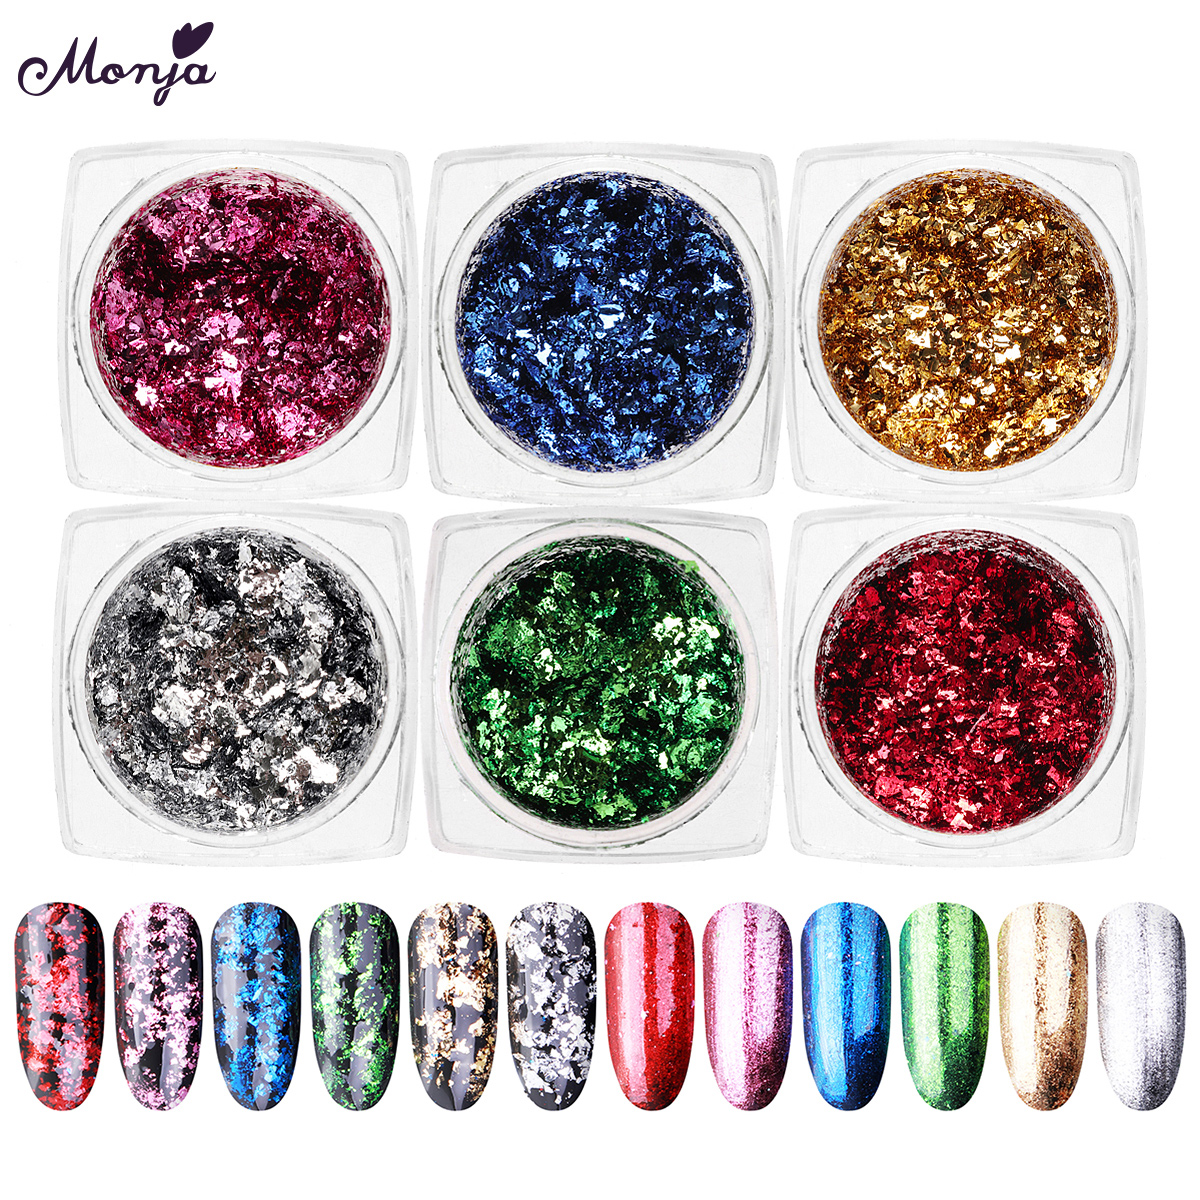 Painting Furniture Decpration and Resin Jewelry Making 3 Colors 9g Imitation Gold//Silver//Copper Leaf Metallic Foil Flakes for Resin Crafts,Nails Art 3 Color Gold Foil Flakes for Resin